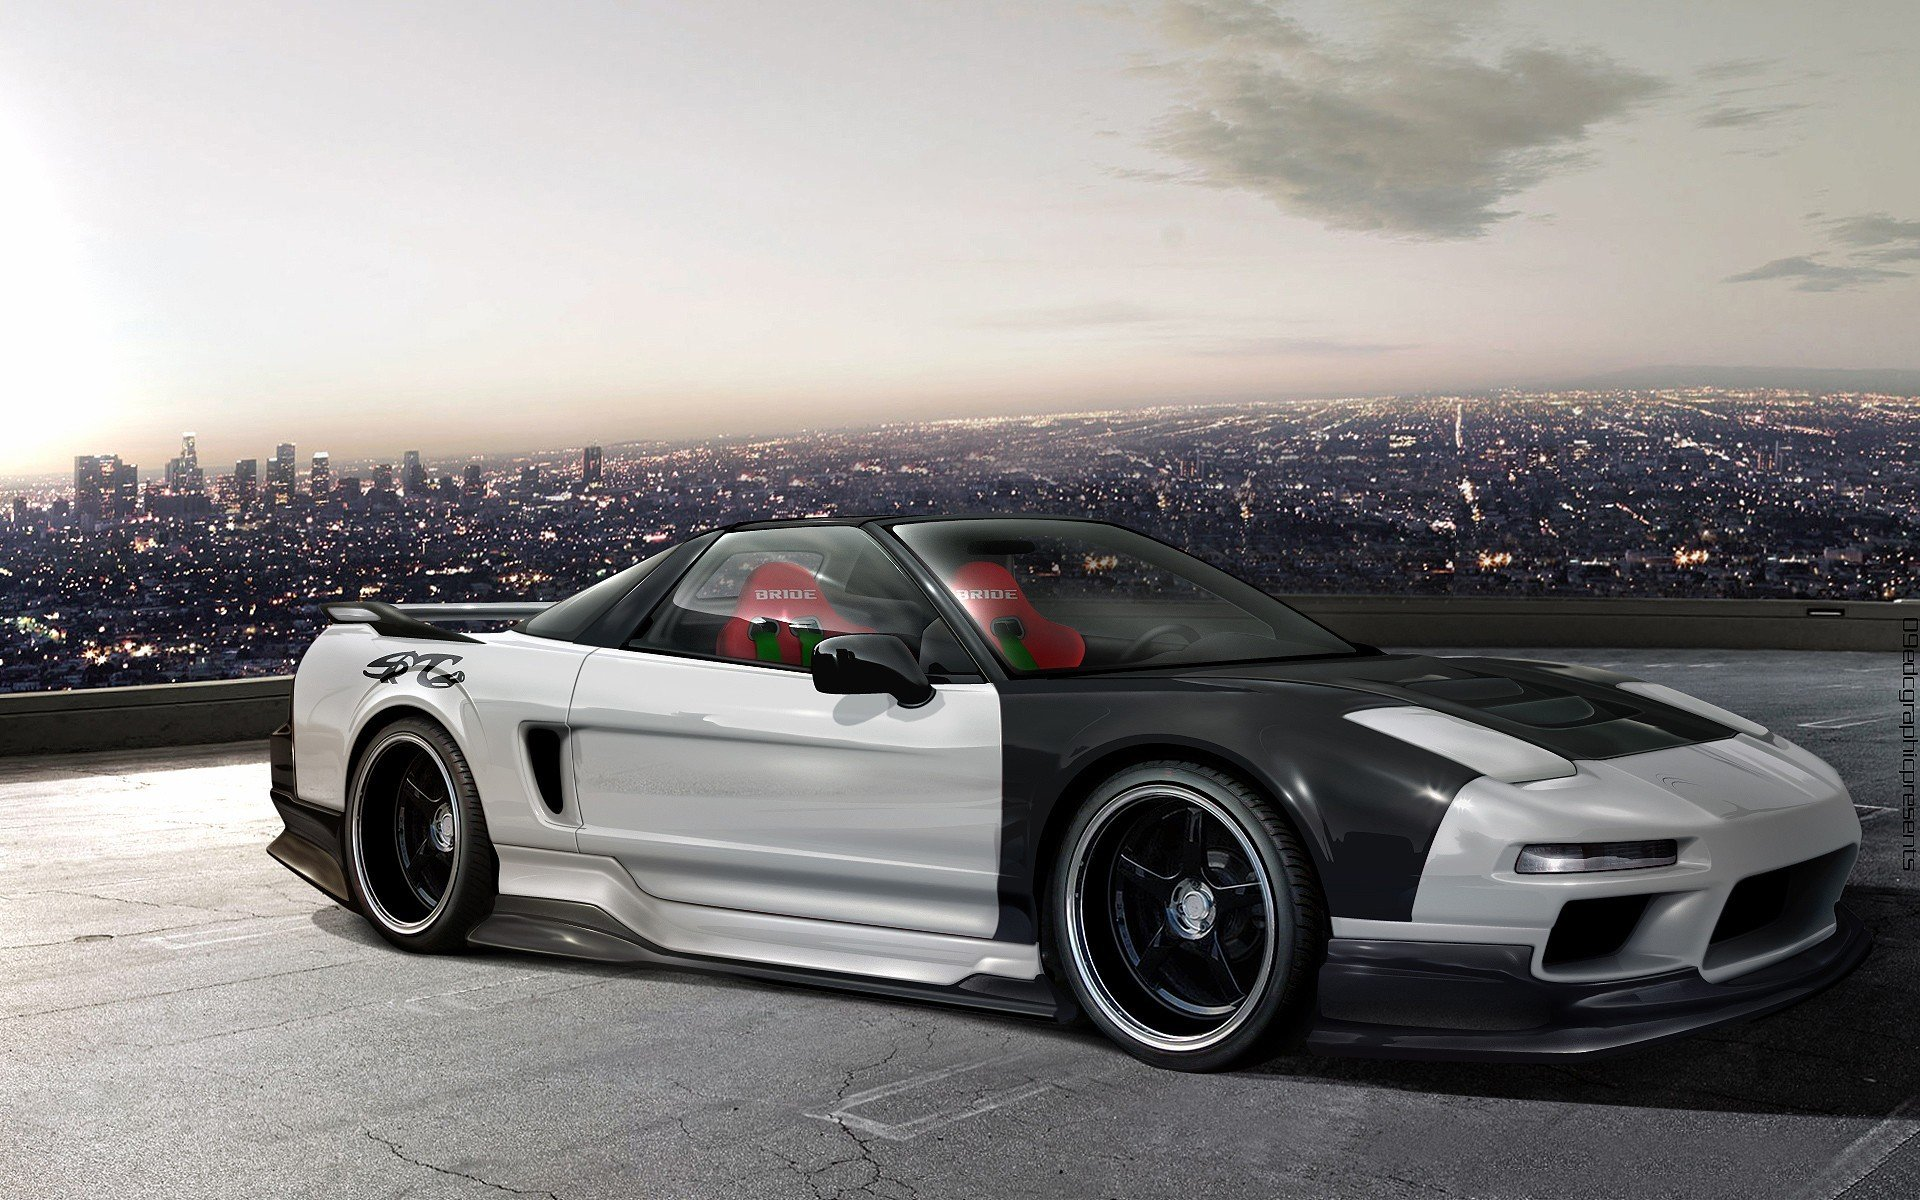 Acura-nsx honda-nsx coupe tuning veilside supercars cars japan body kit wallpaper | 1920x1200 ...